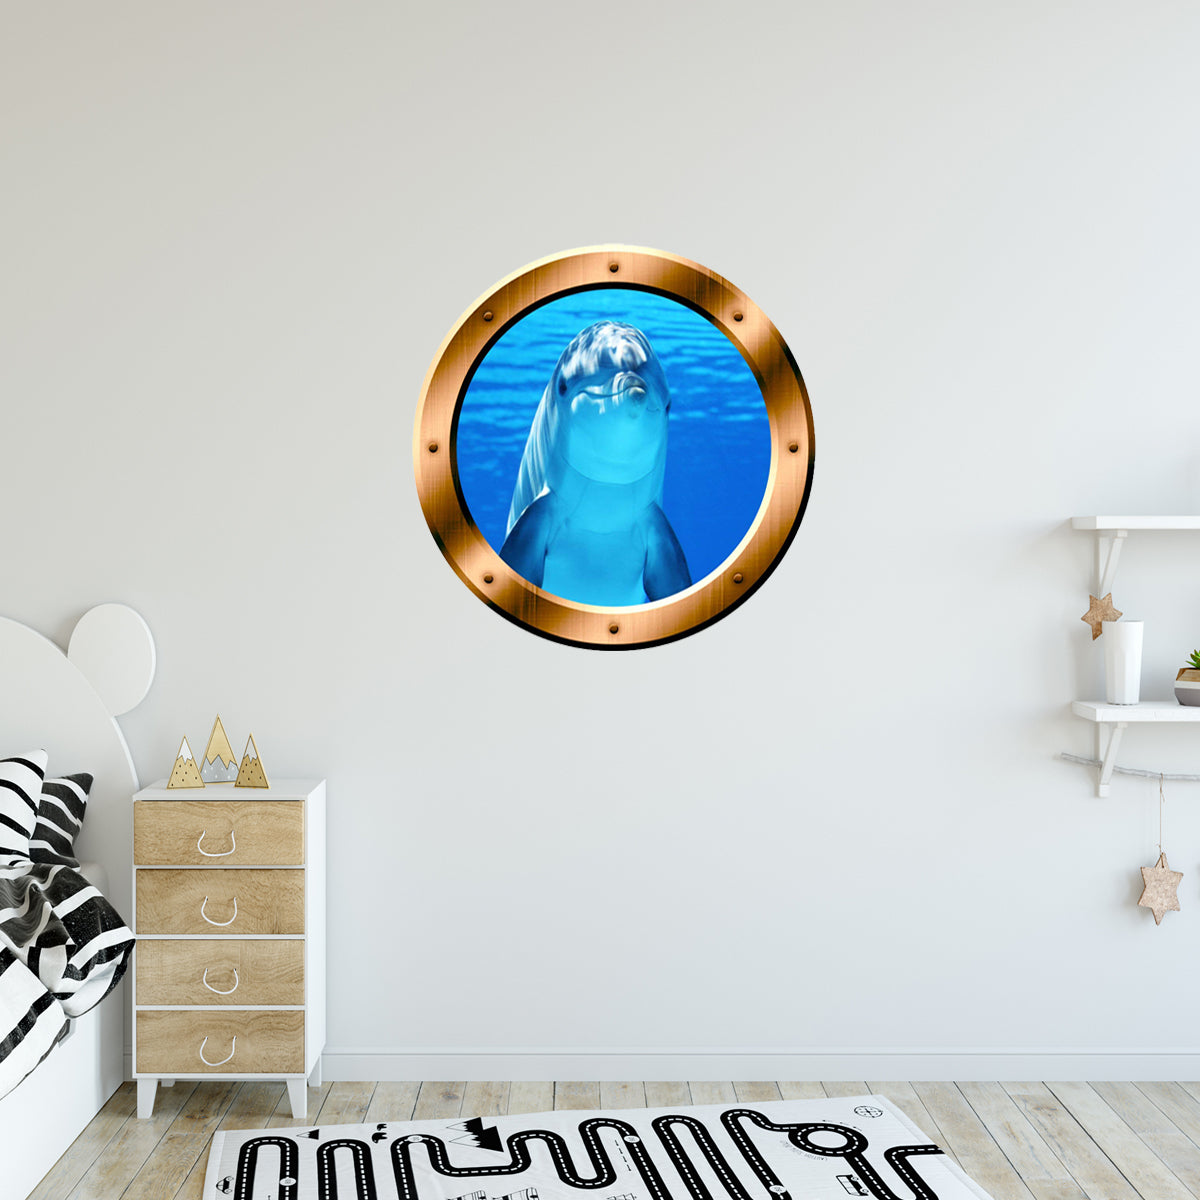 VWAQ Peel and Stick Porpoise Dolphin Bronze Porthole Vinyl Wall Decal - BP29 - VWAQ Vinyl Wall Art Quotes and Prints